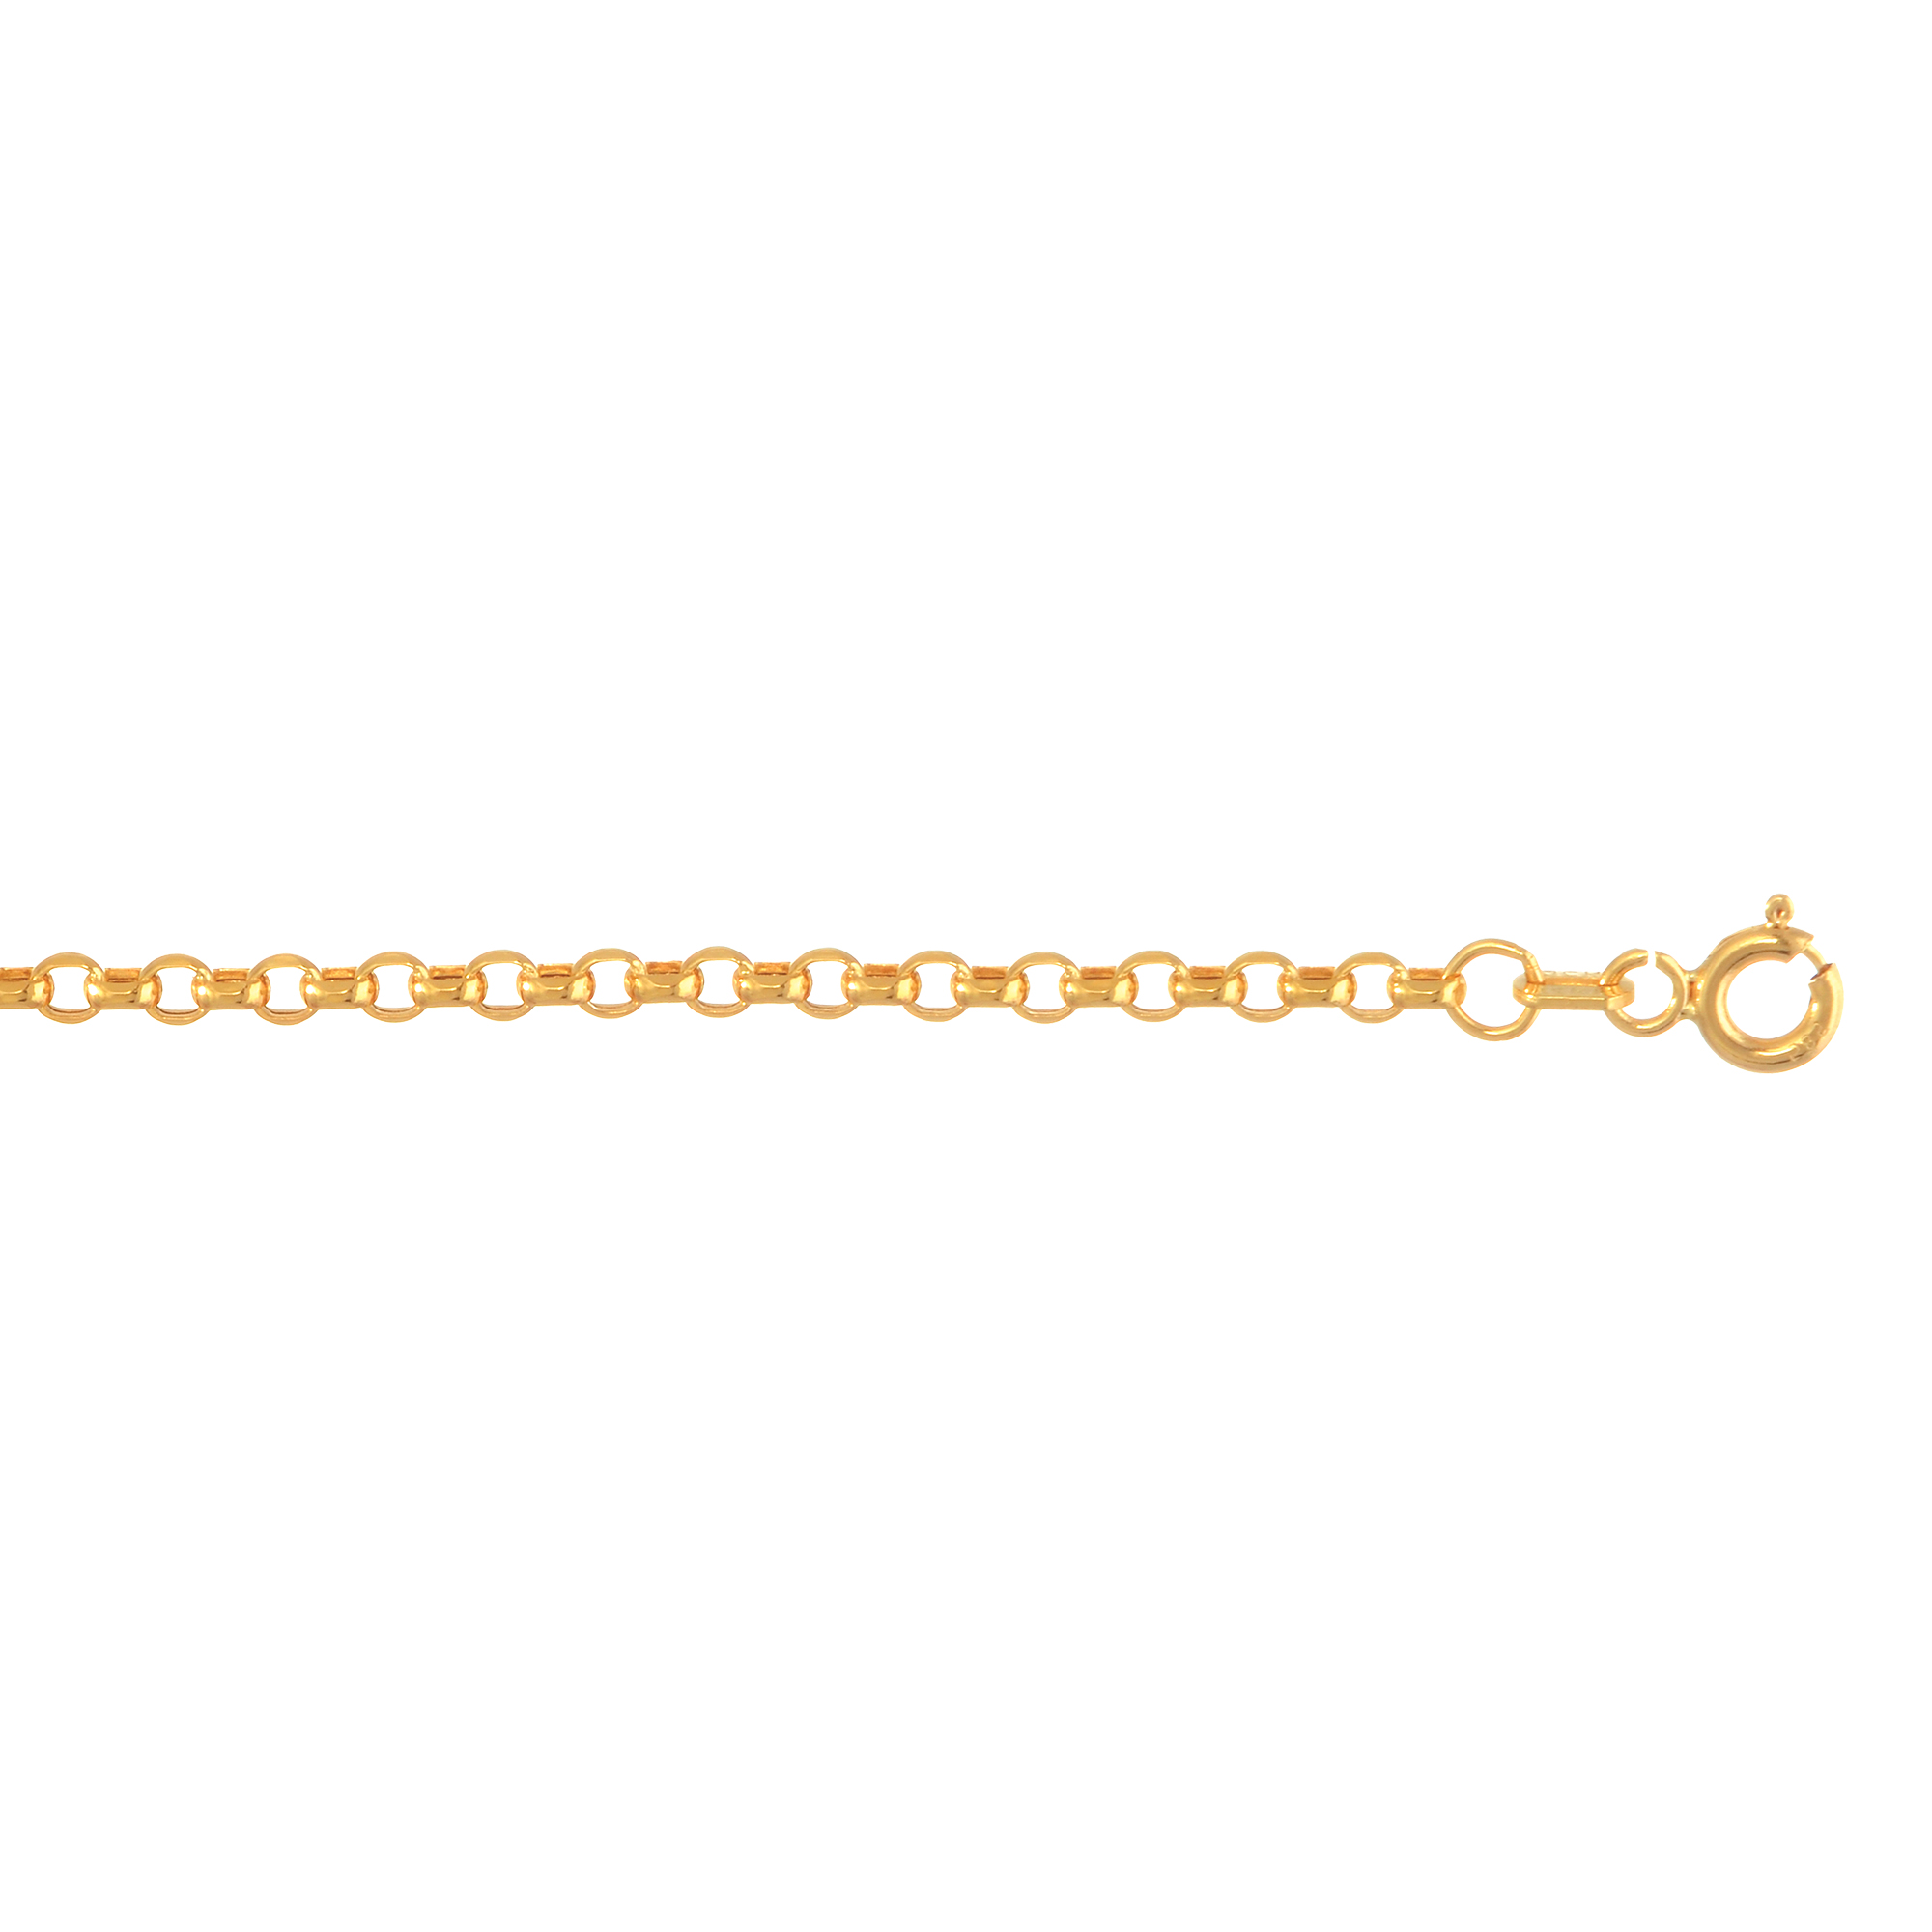 Hollow 14k Gold Rolo Chain For Men & Women Diamond Cut 2mm Wide